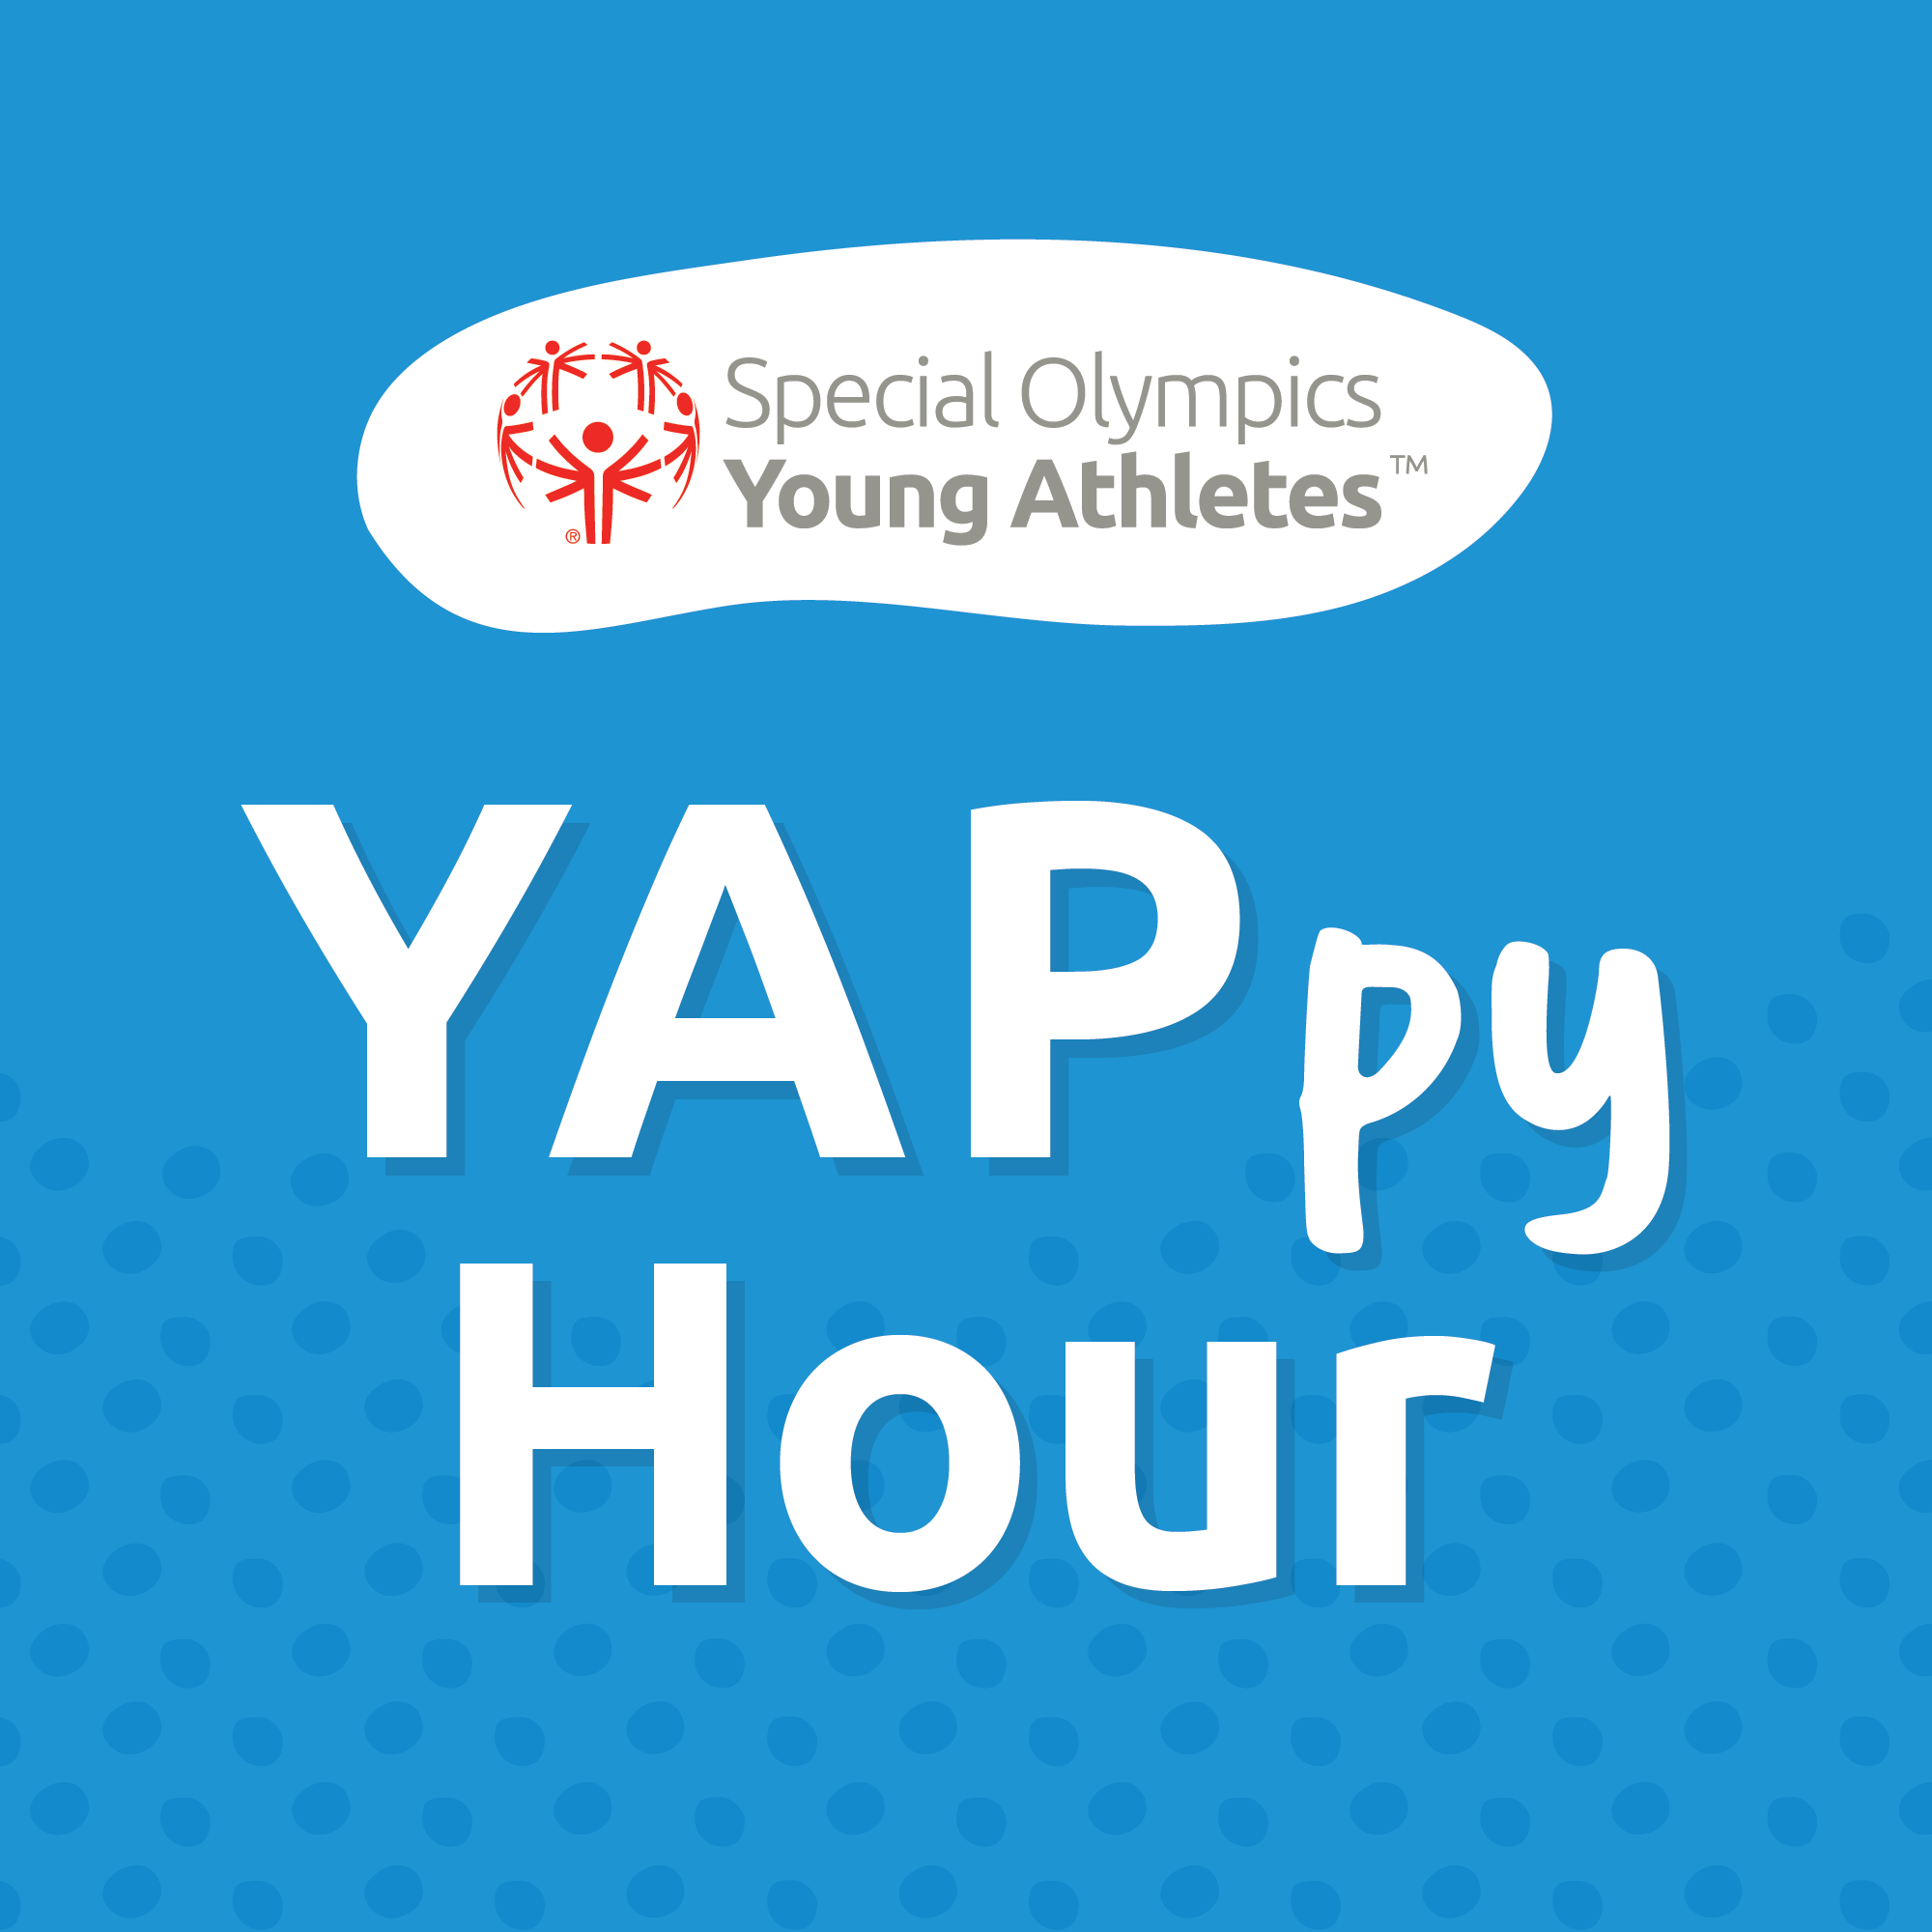 SOMD_2020_VirtualMOVEment_Web_Home_Initiatives_3_YAPpyHour